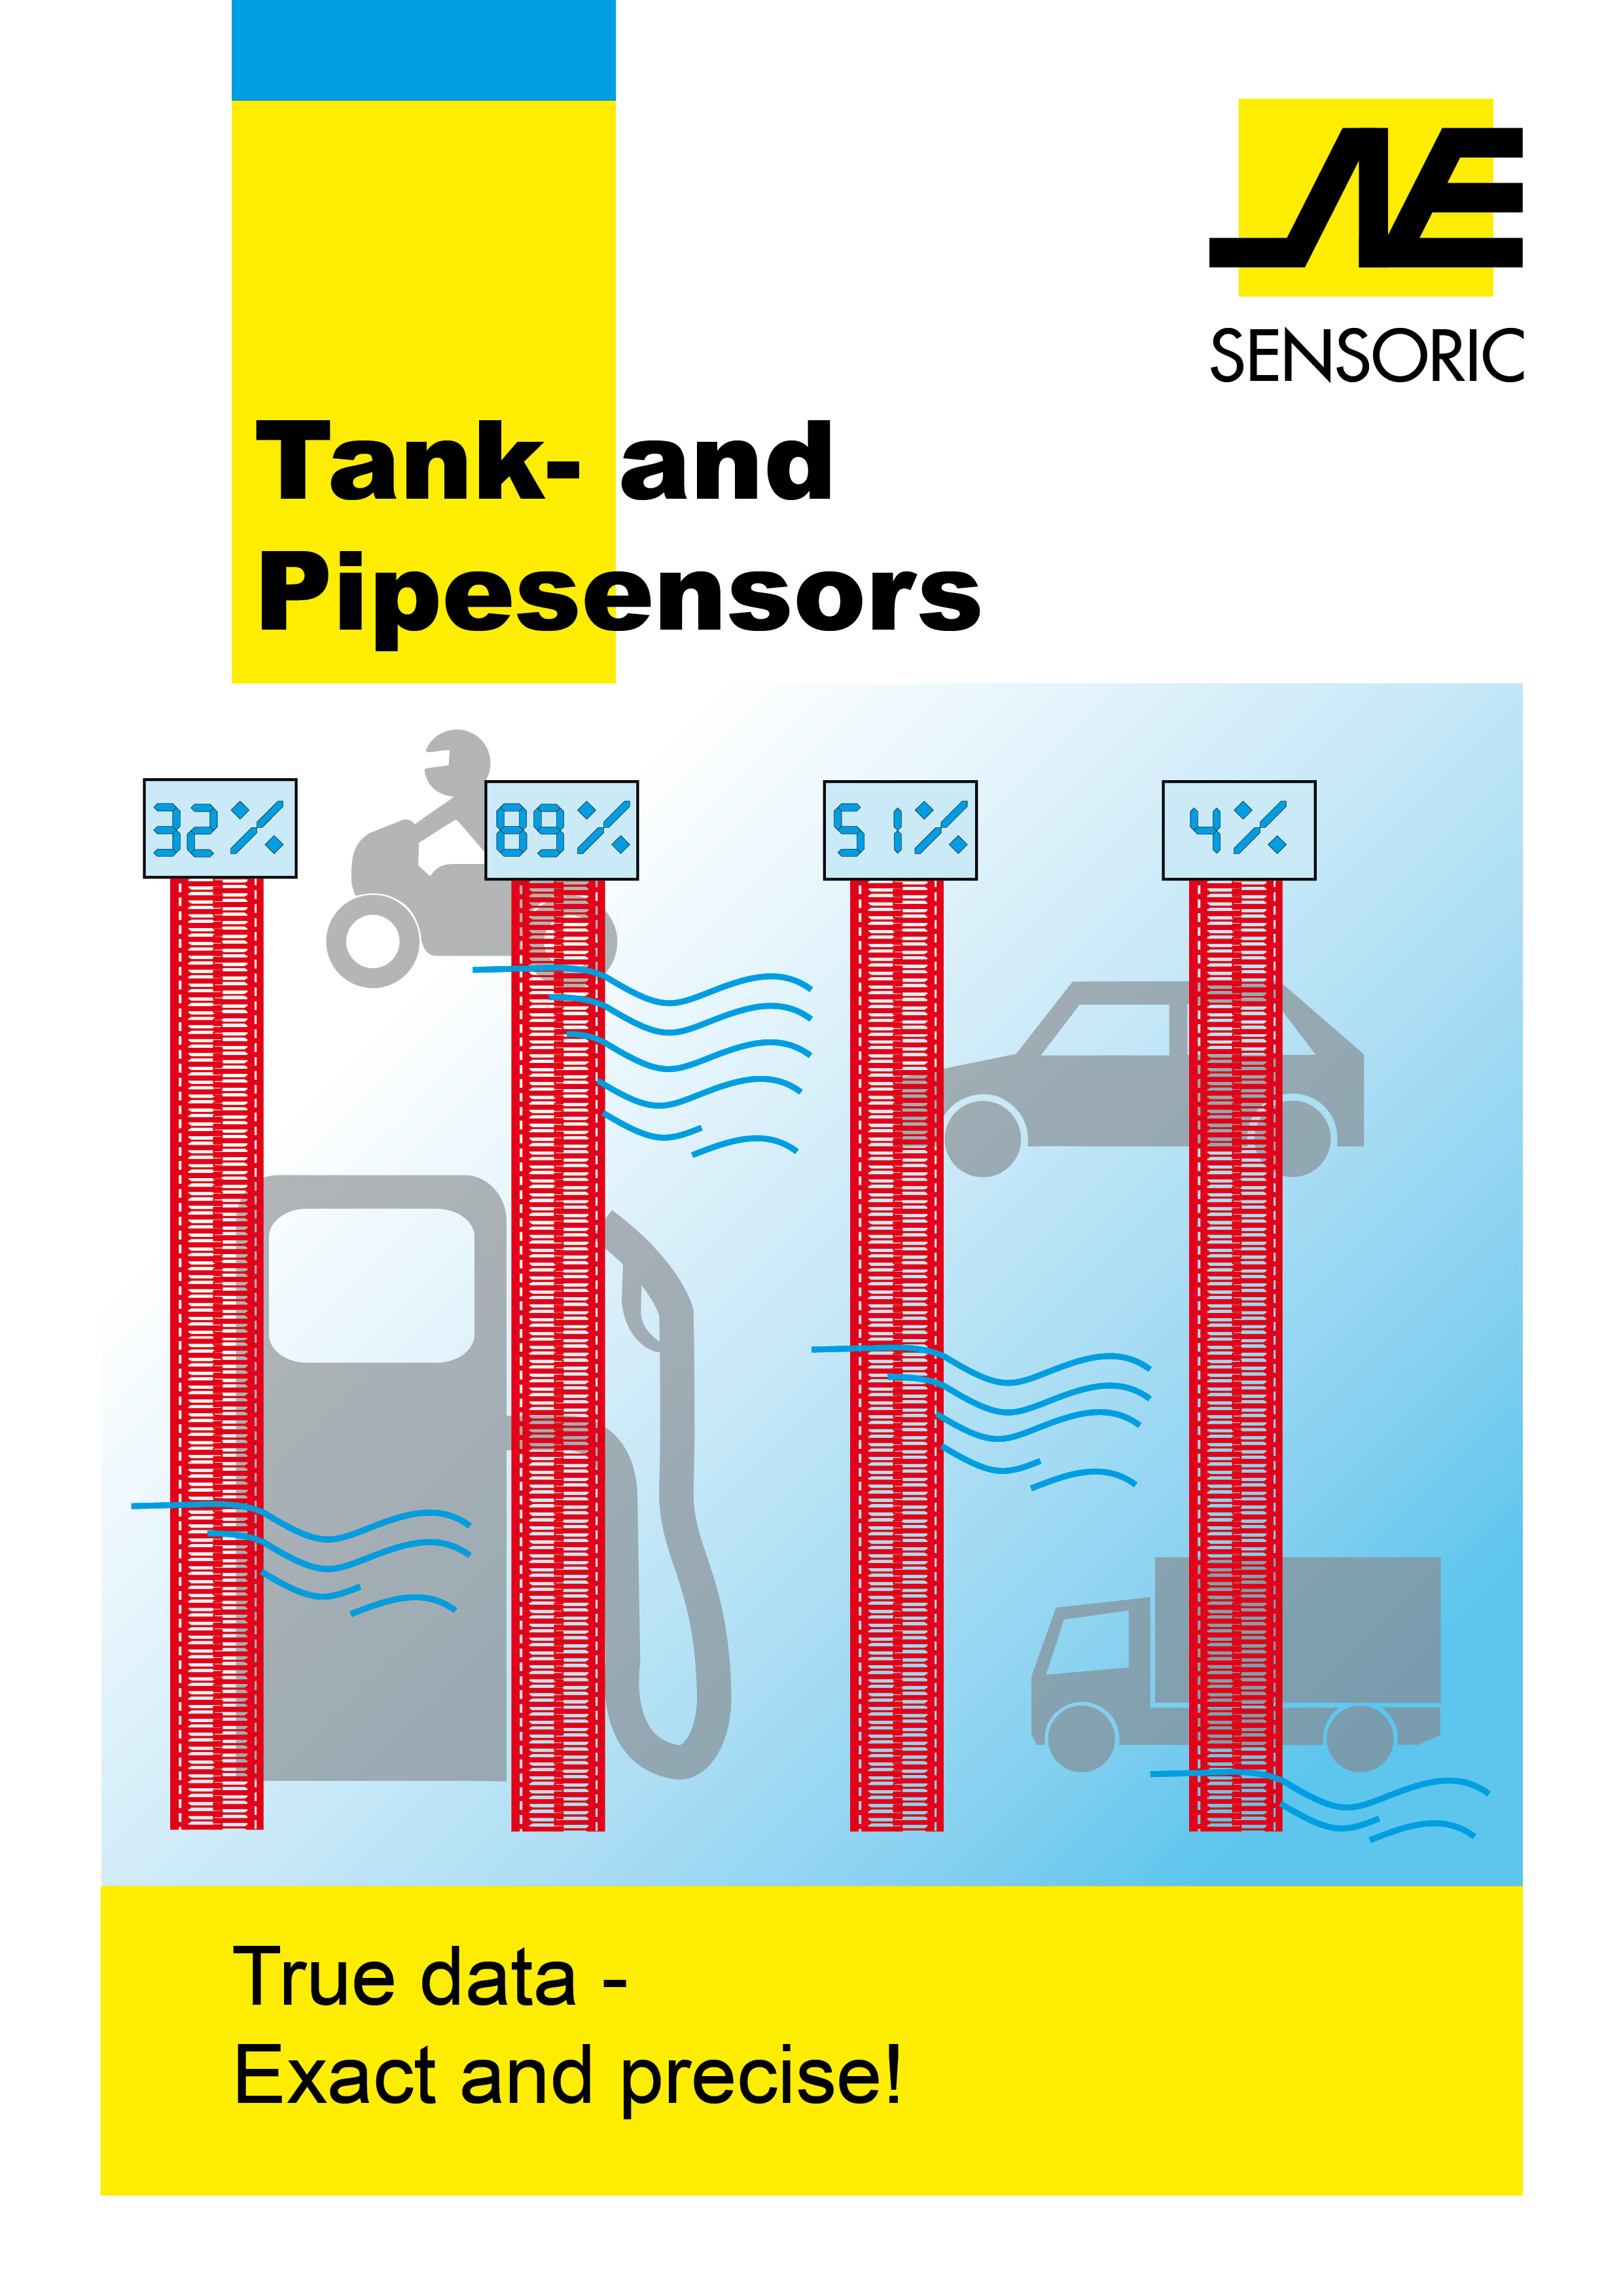 Tank and Pipesensors